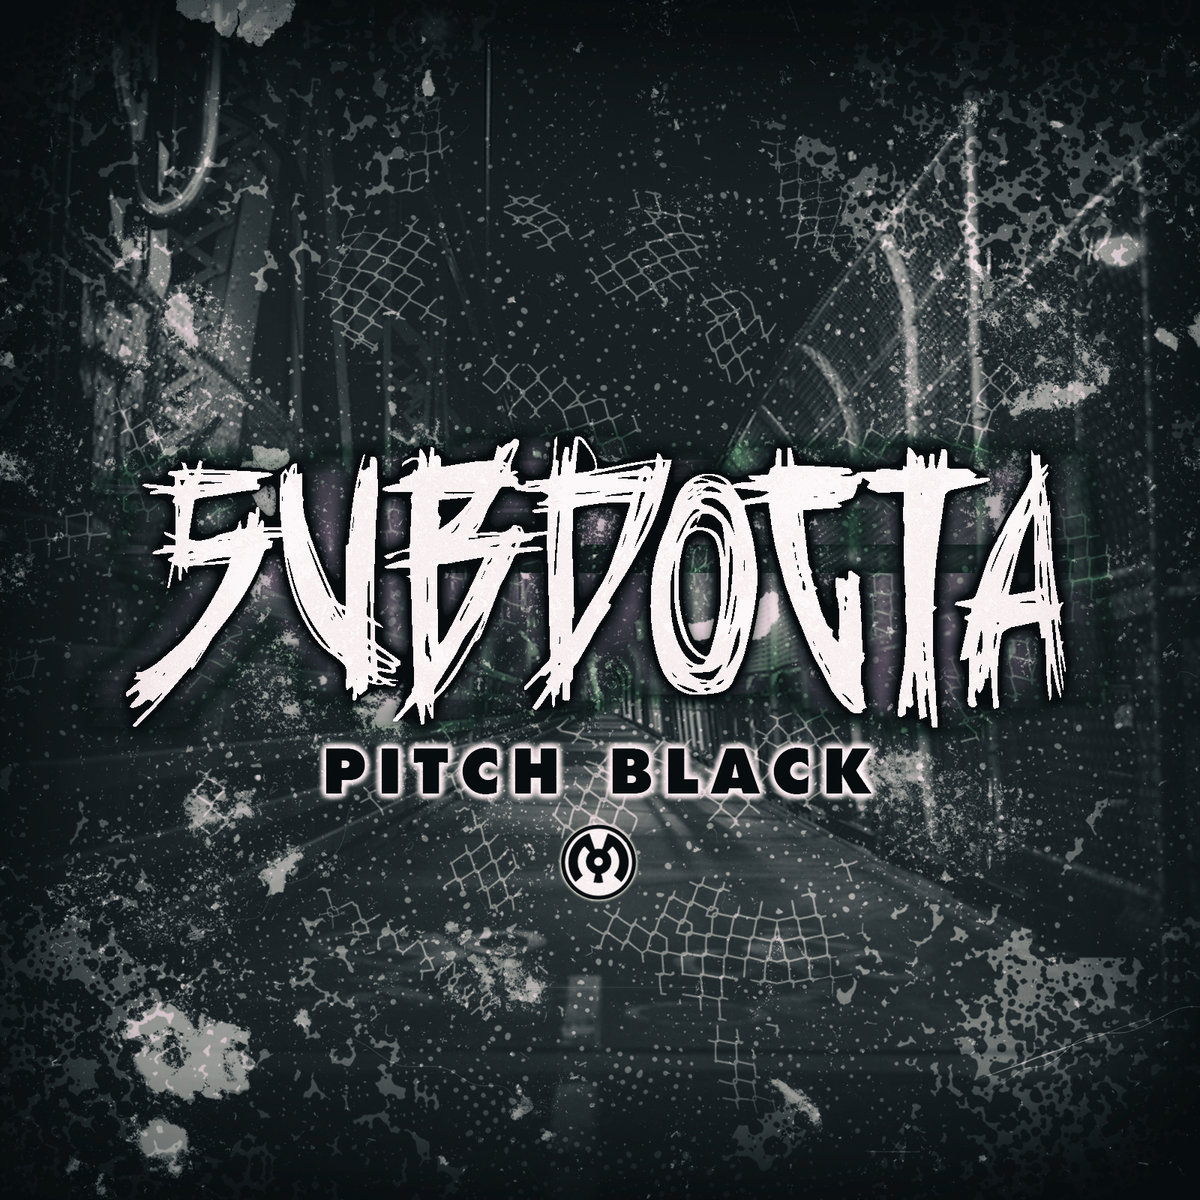 SubDocta - Swerve @ 'Pitch Black' album (electronic, dubstep)